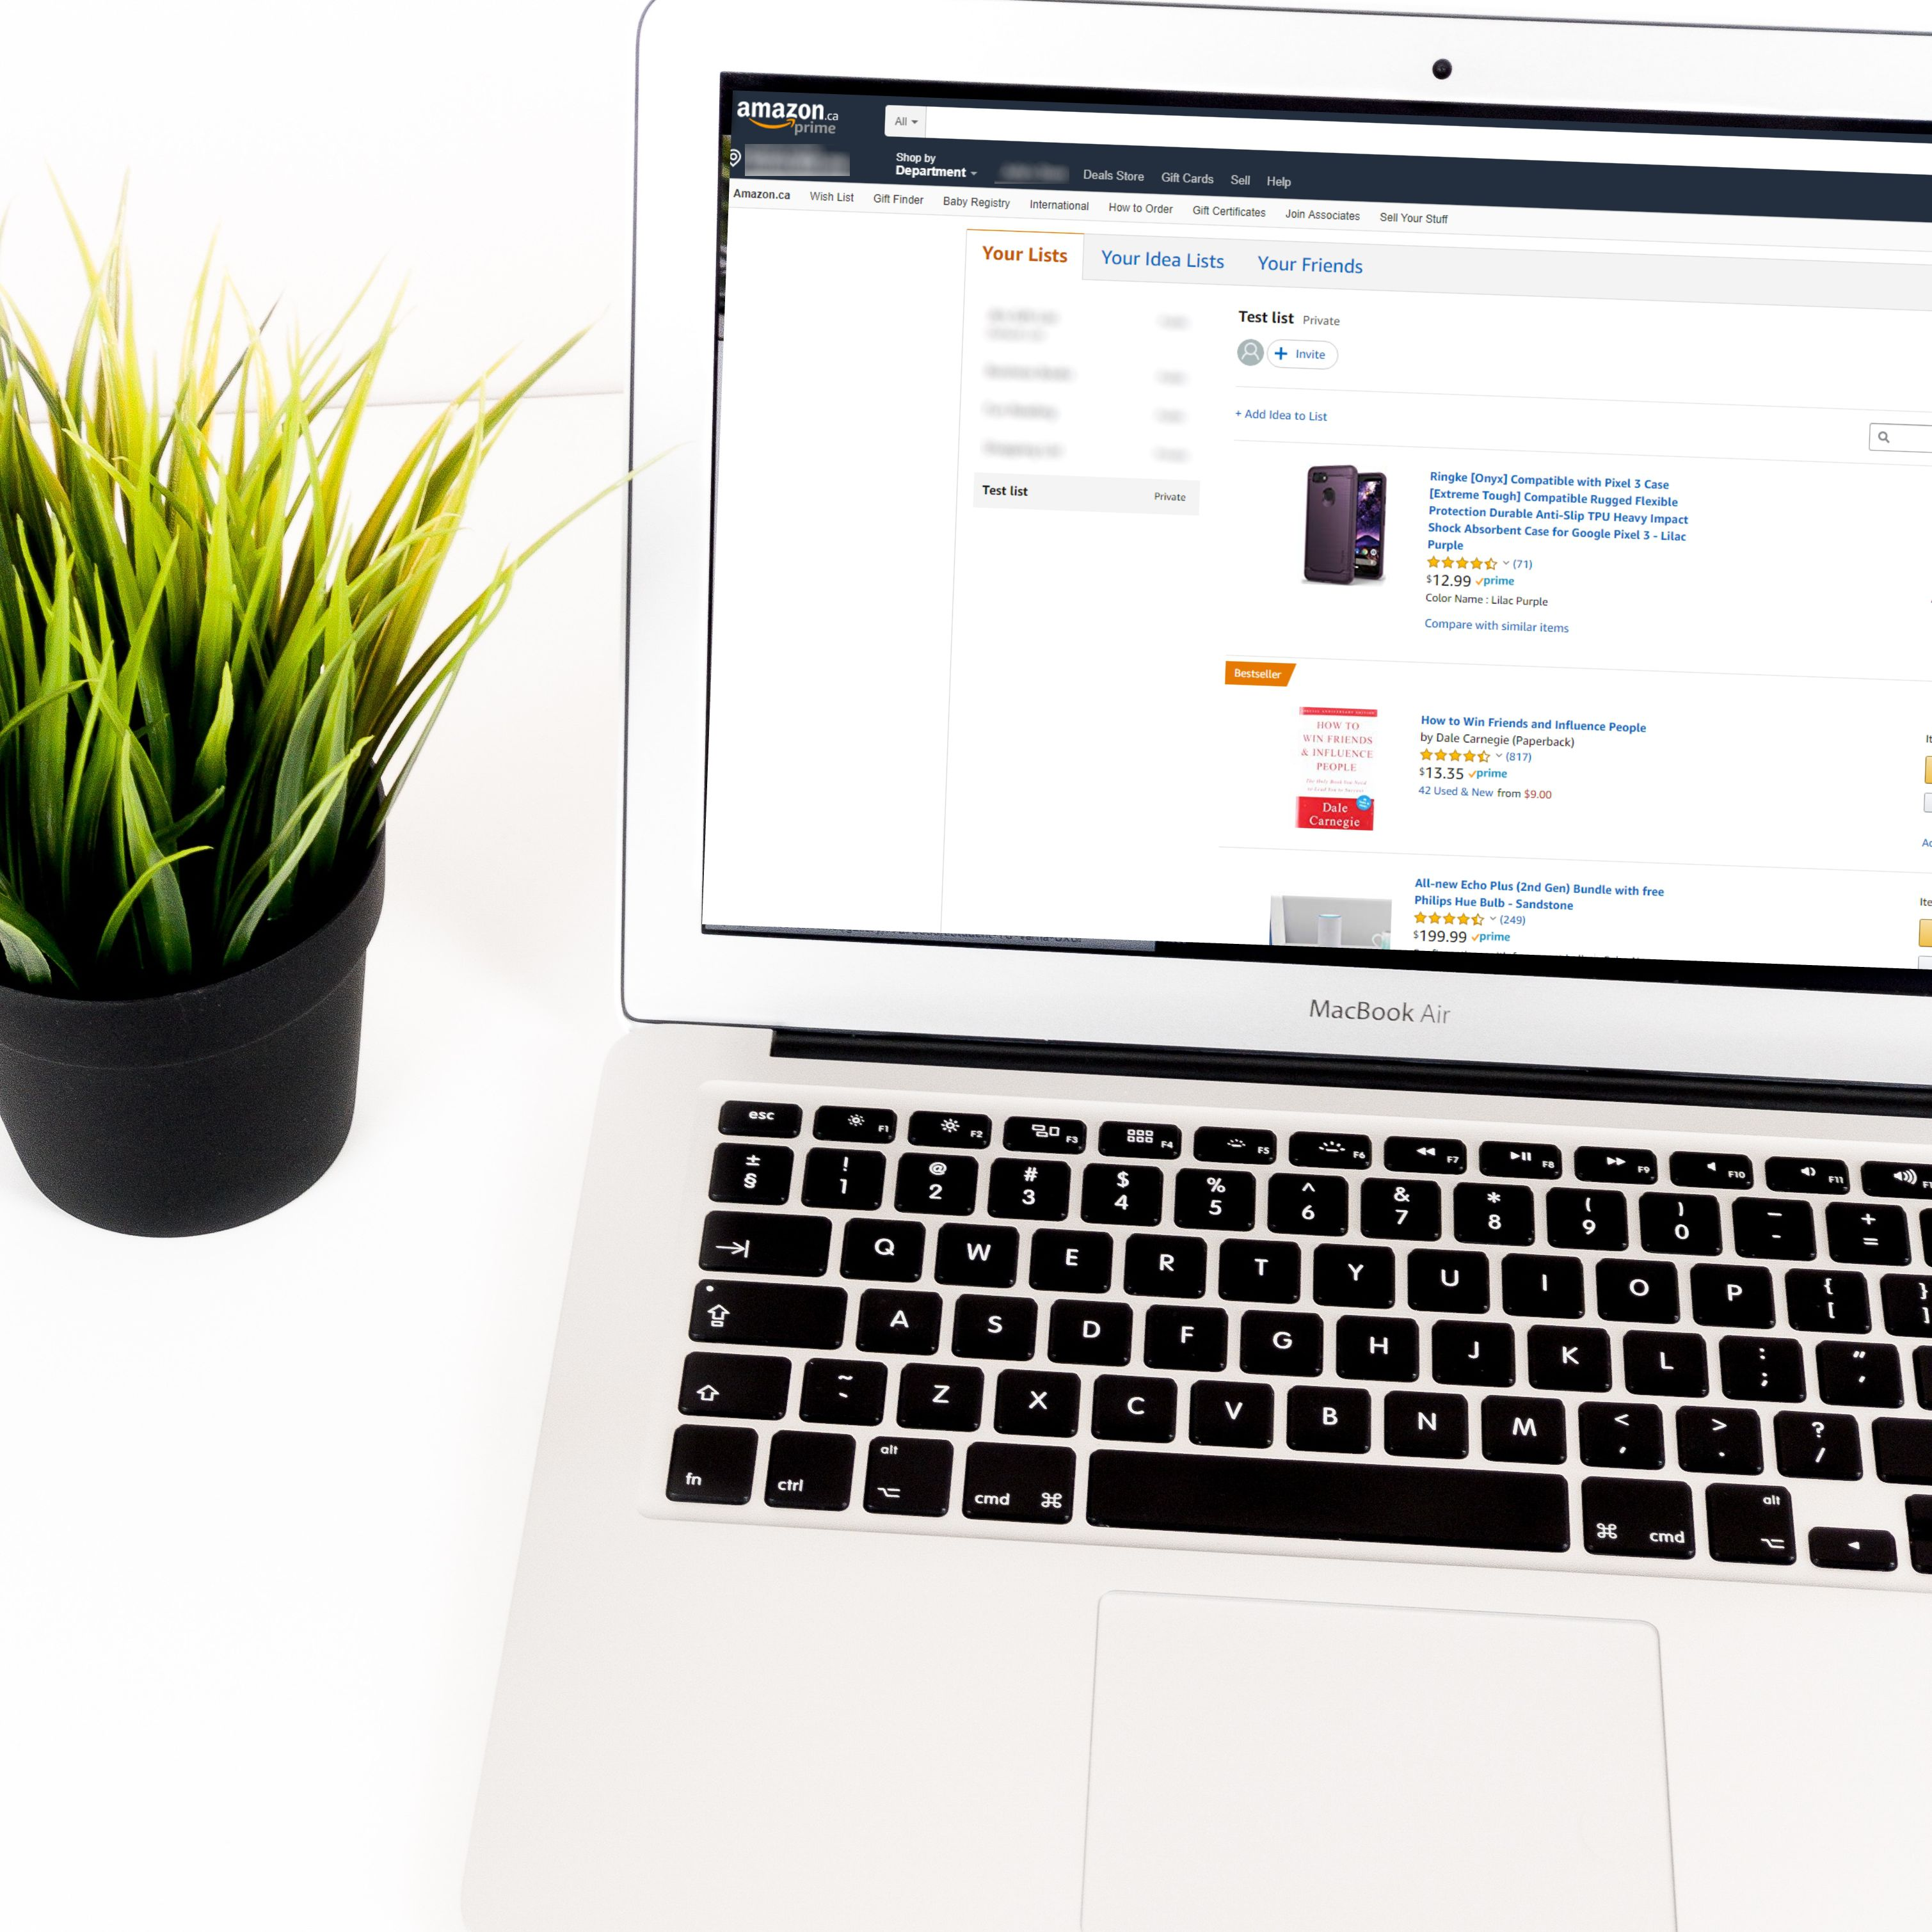 How to Make and Share an Amazon Wish List